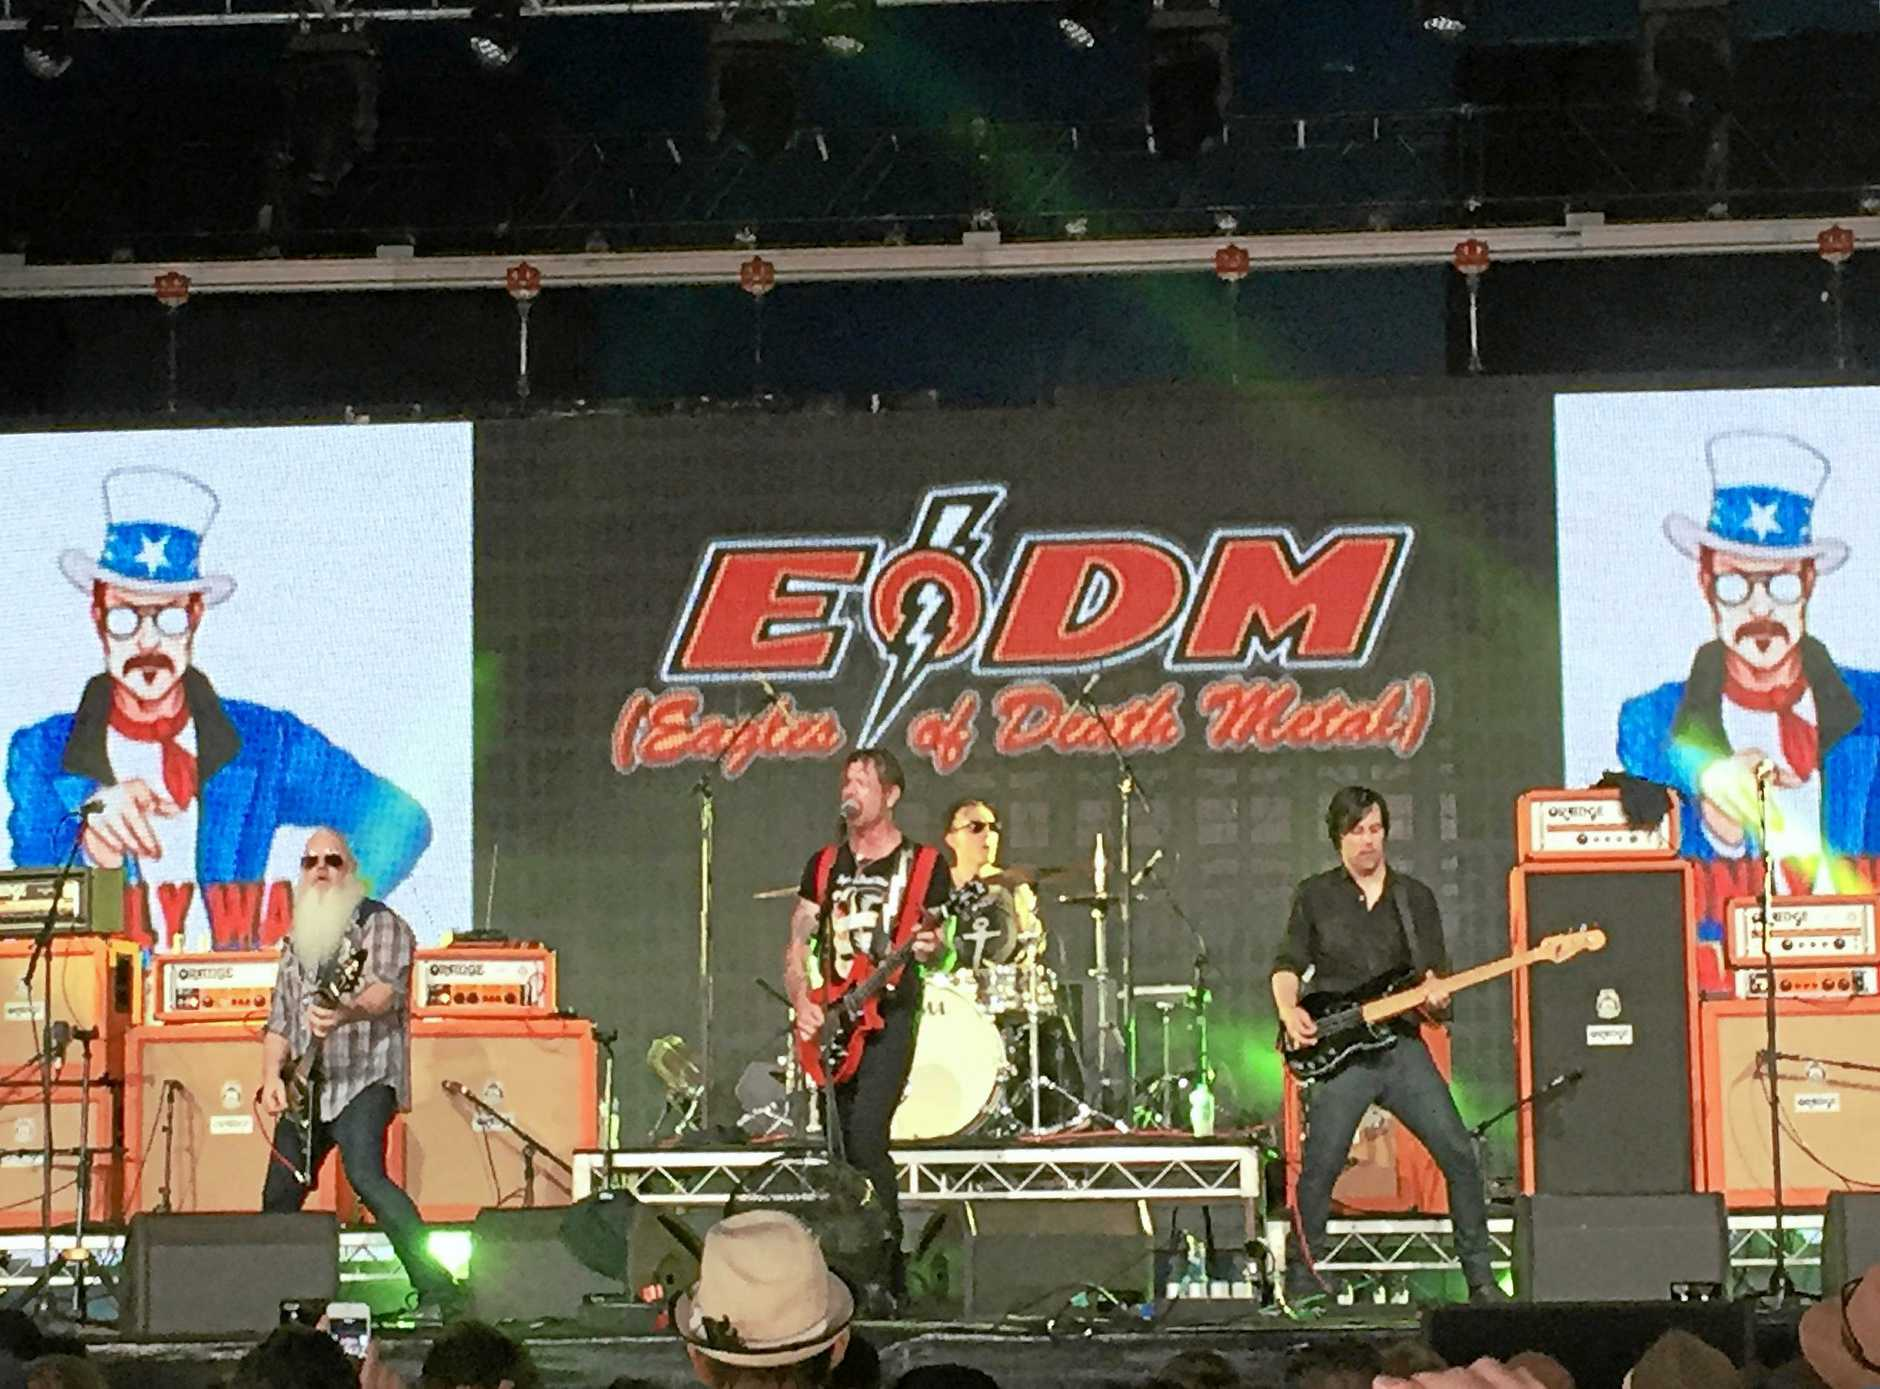 Eagles of Death Metal perform at Byron Bay Bluesfest 2016.